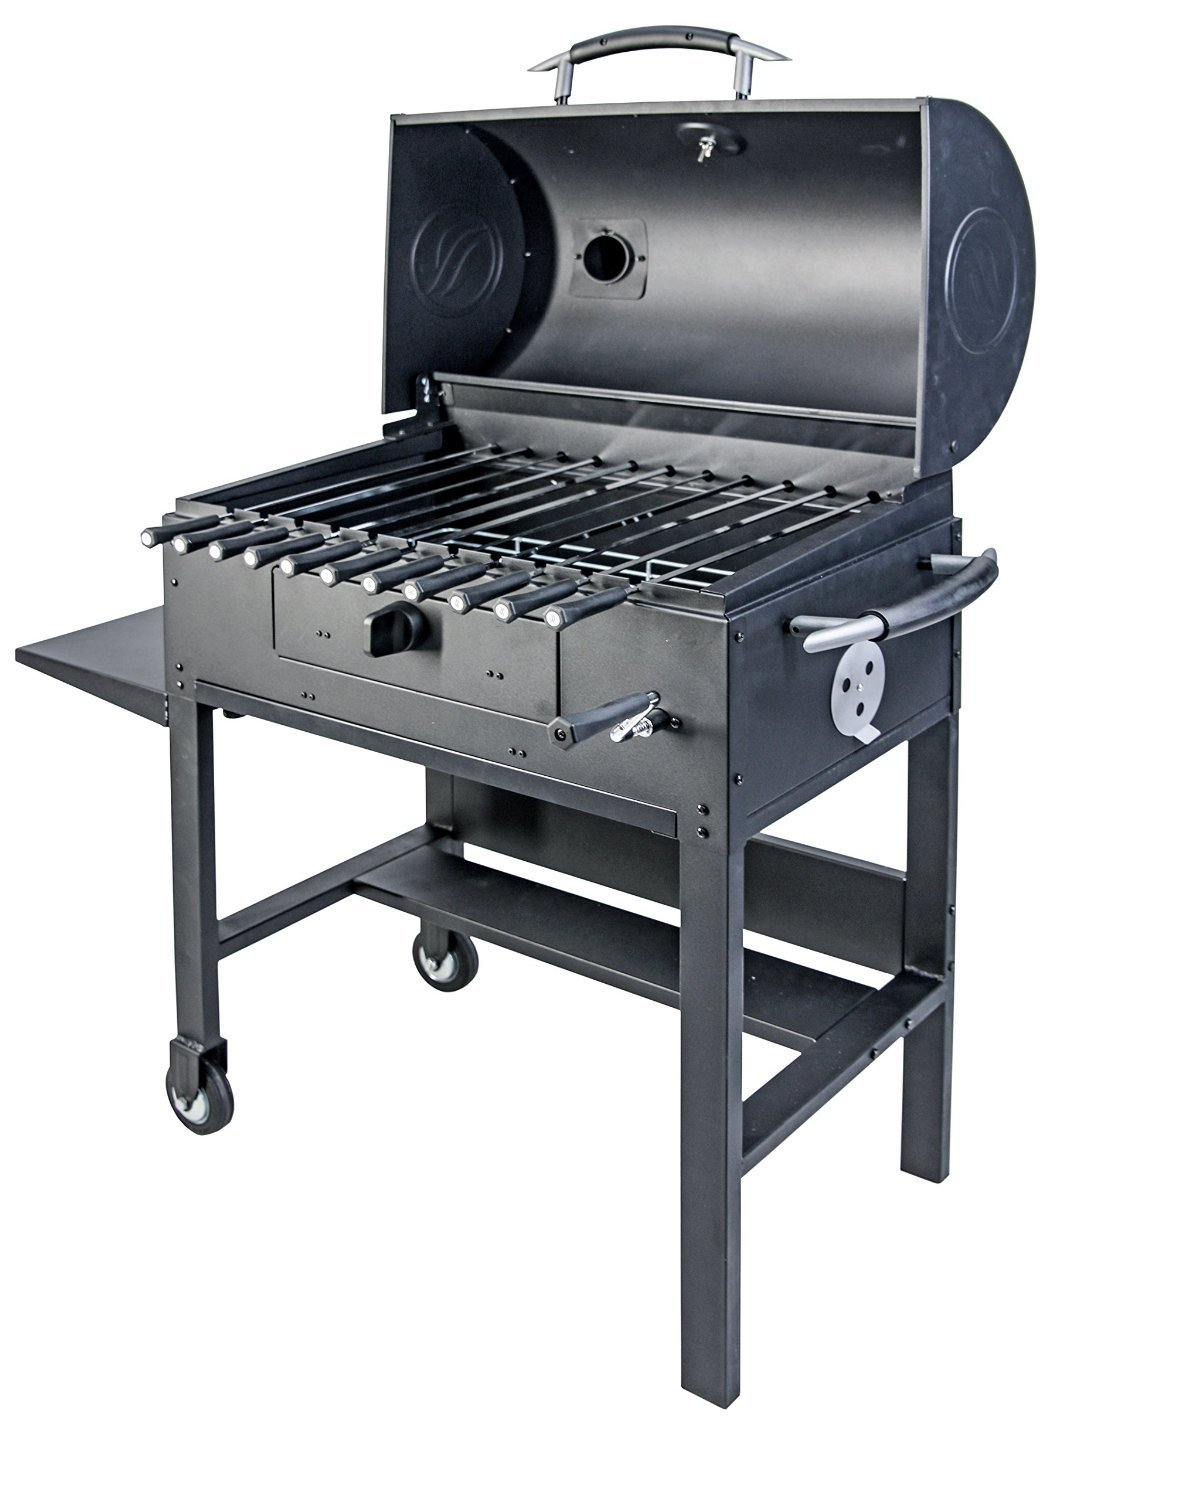 Amazon.com : Blackstone 3 In 1 Kabob Charcoal Grill   Barbecue   Smoker    With Automatic Rotisserie   11 Custom Heavy Duty Skewers Included : Garden  U0026 ...